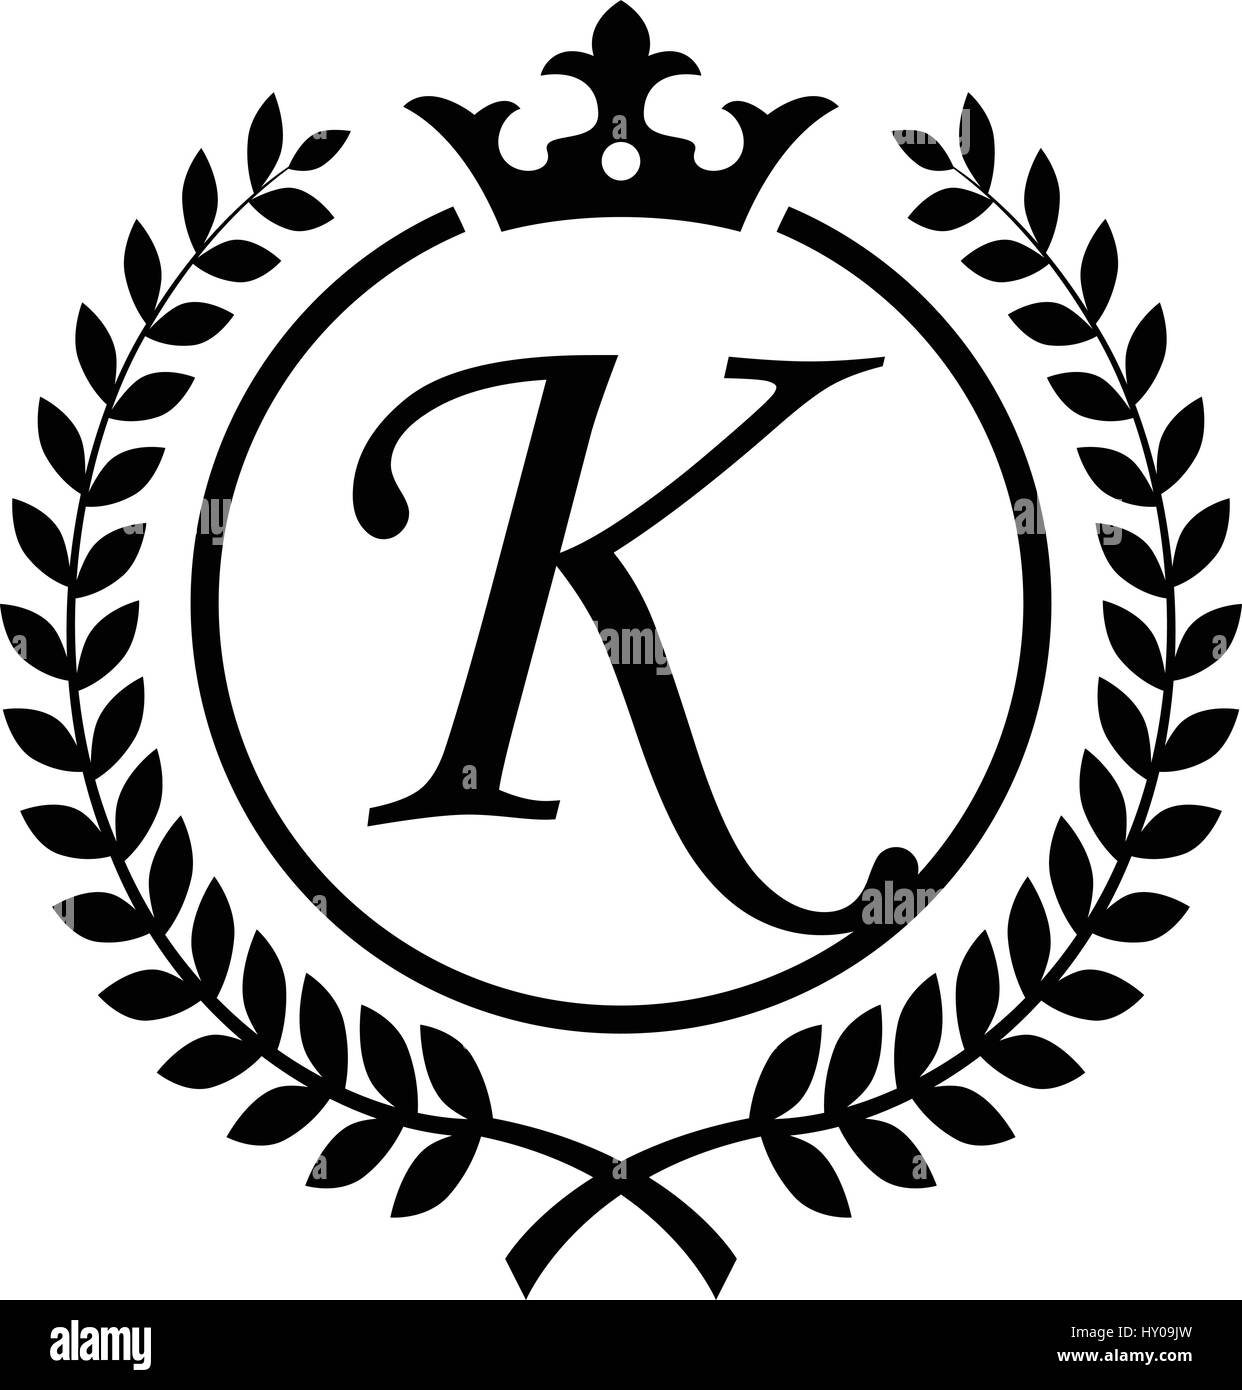 Vintage Letter K initial inside Laurel wreath symbol design - Stock Image